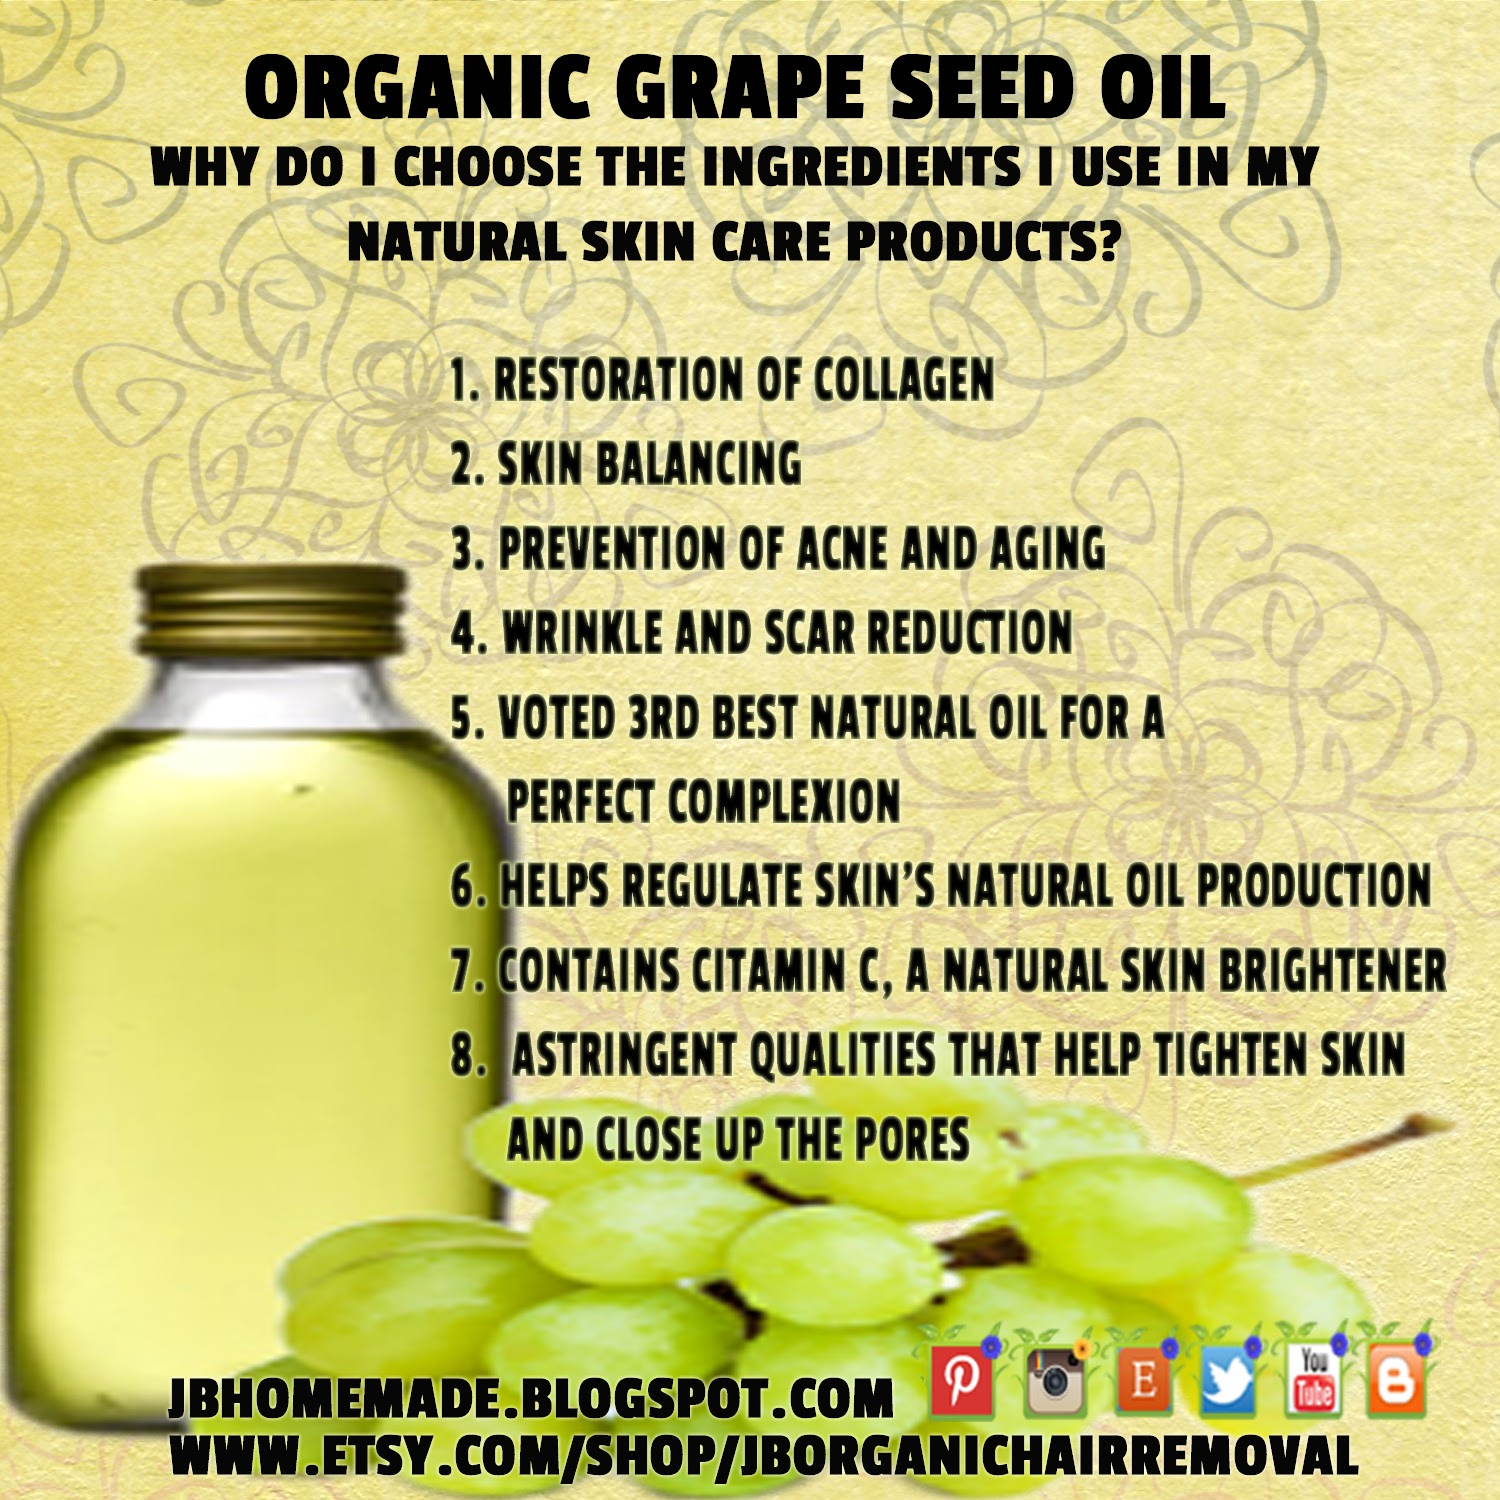 What is grapeseed oil used for